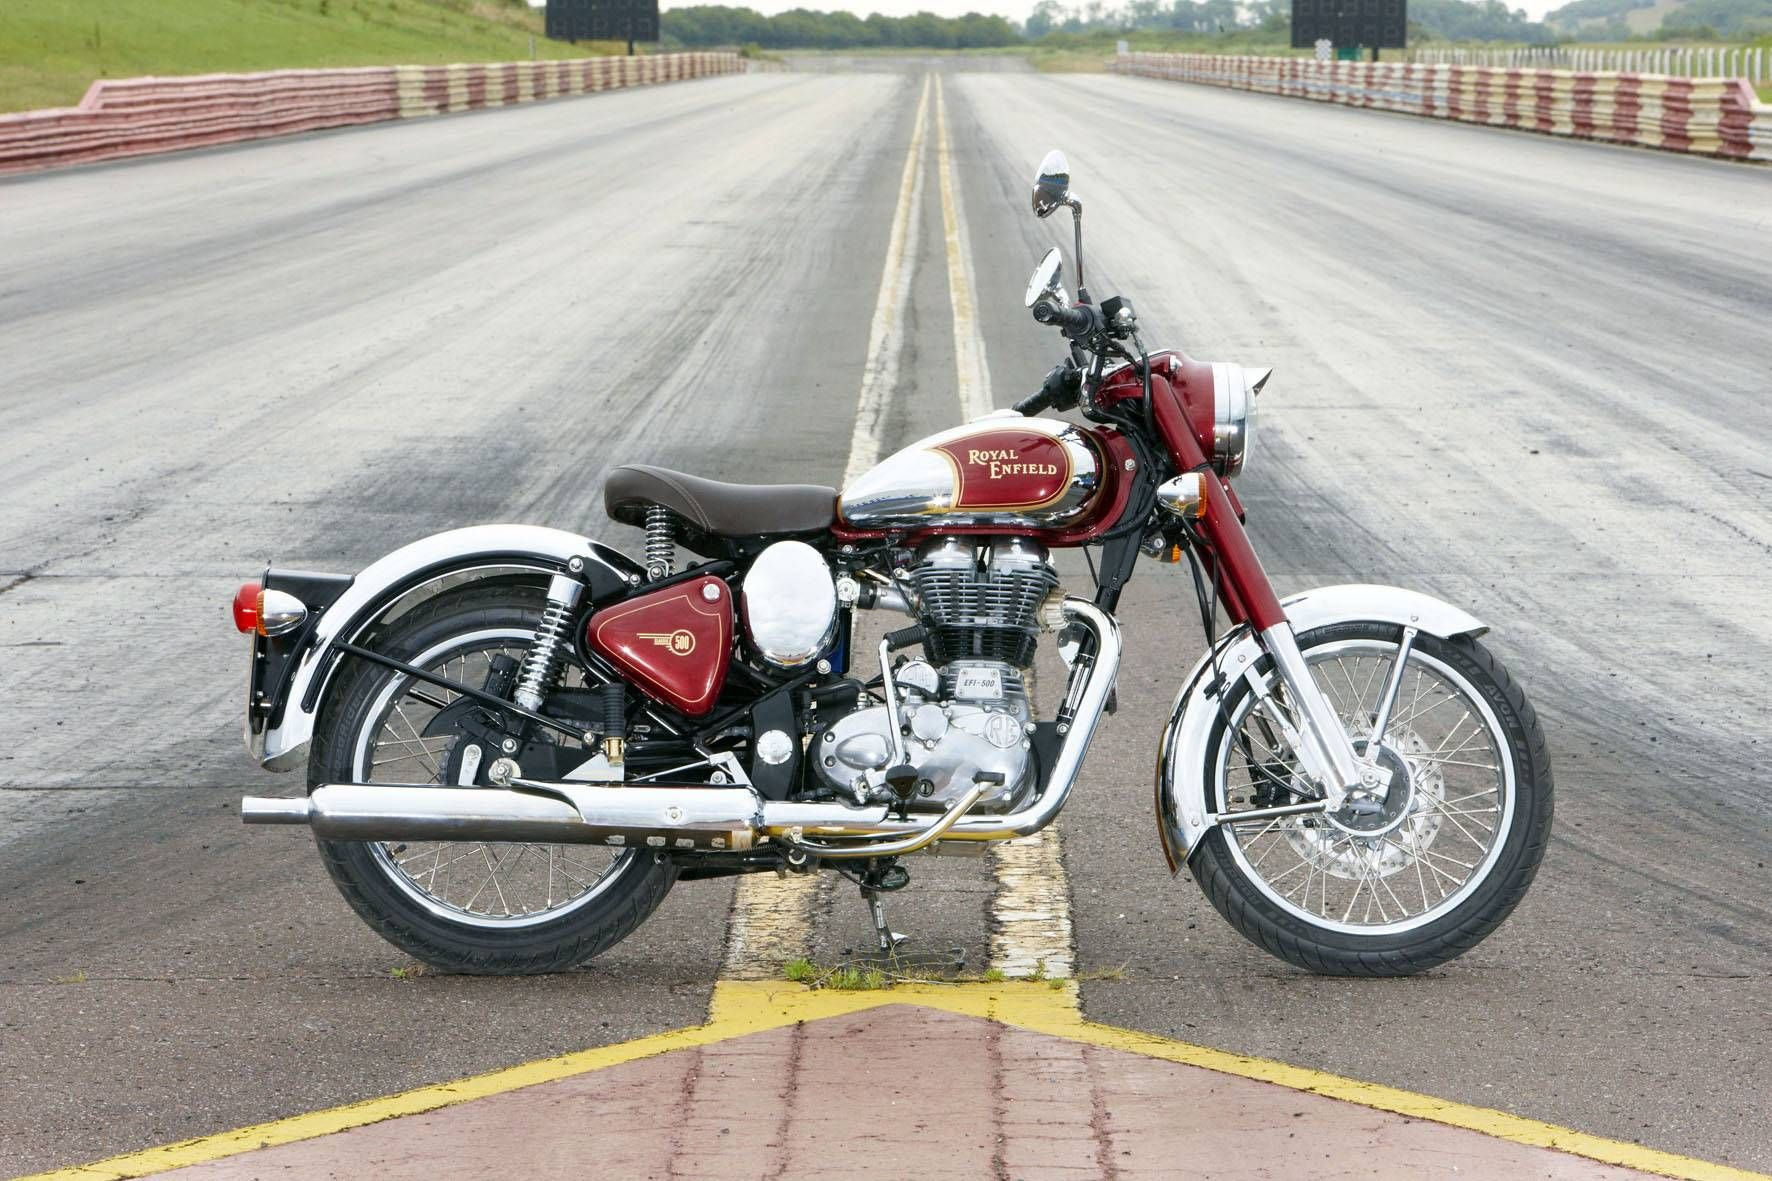 Royal Enfield Images Royal Enfield Classic 500 Chrome Is Cruiser